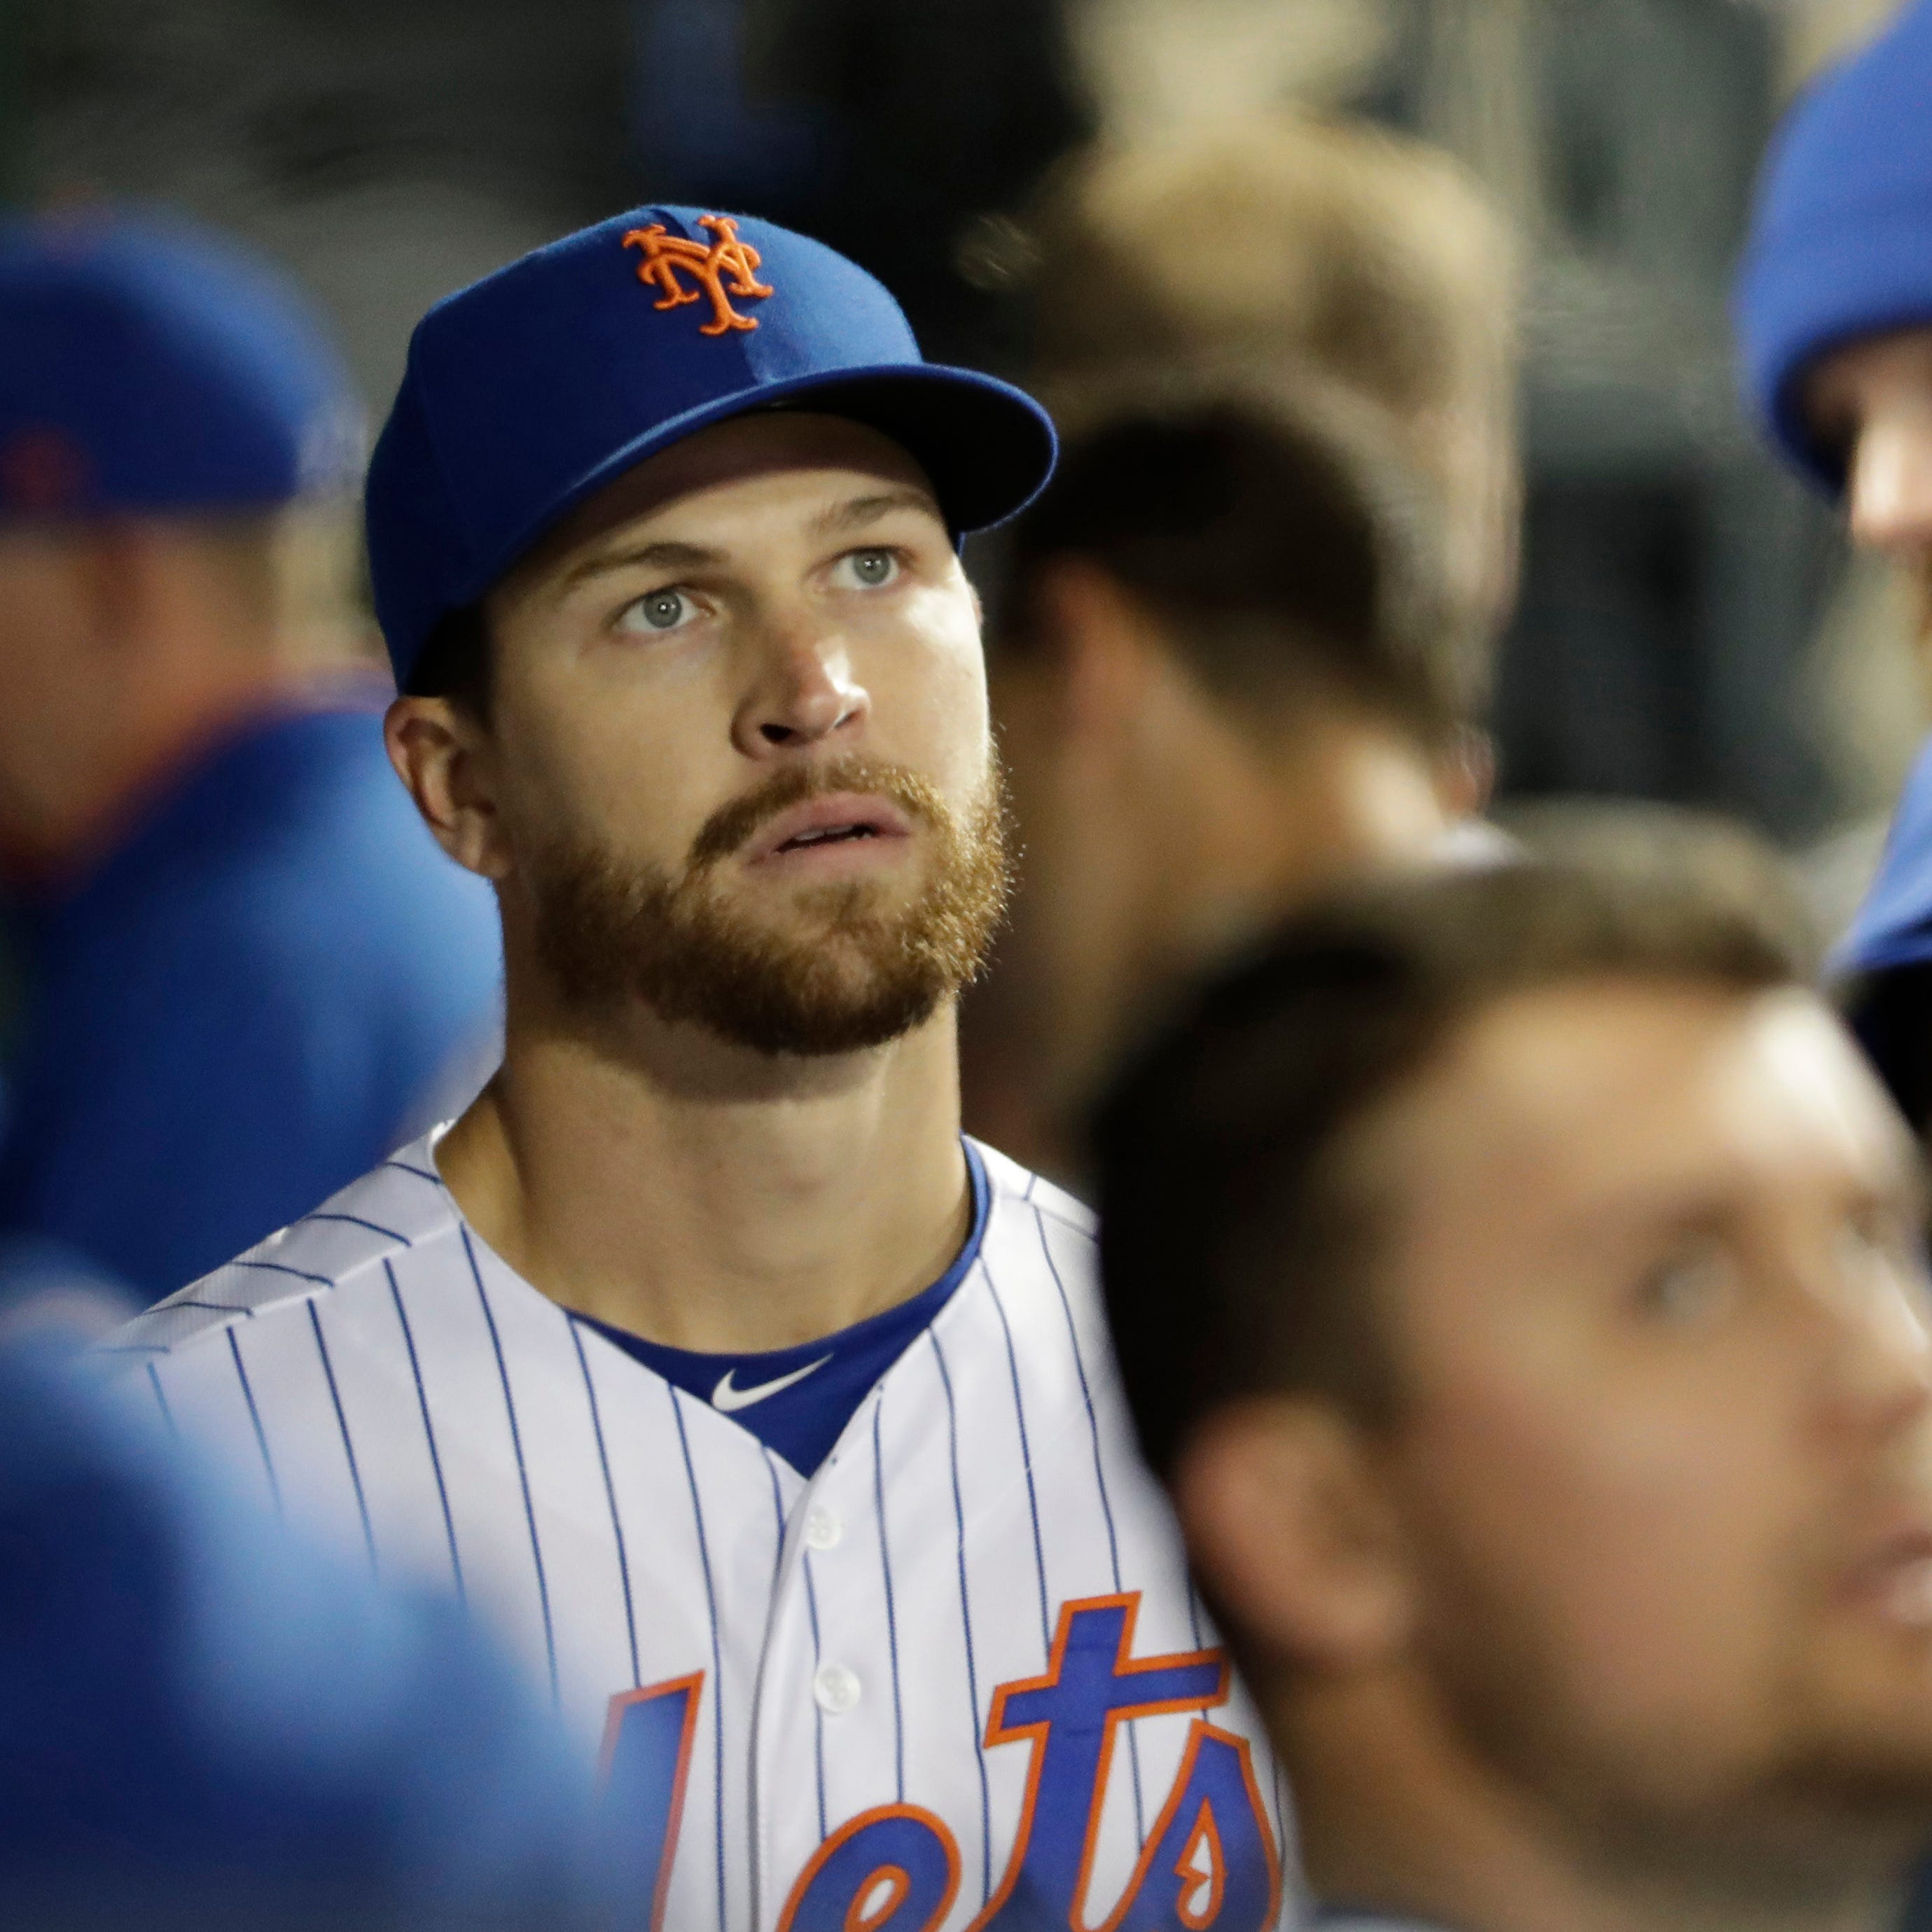 Here's why the Mets' Jacob deGrom played catch before his MRI